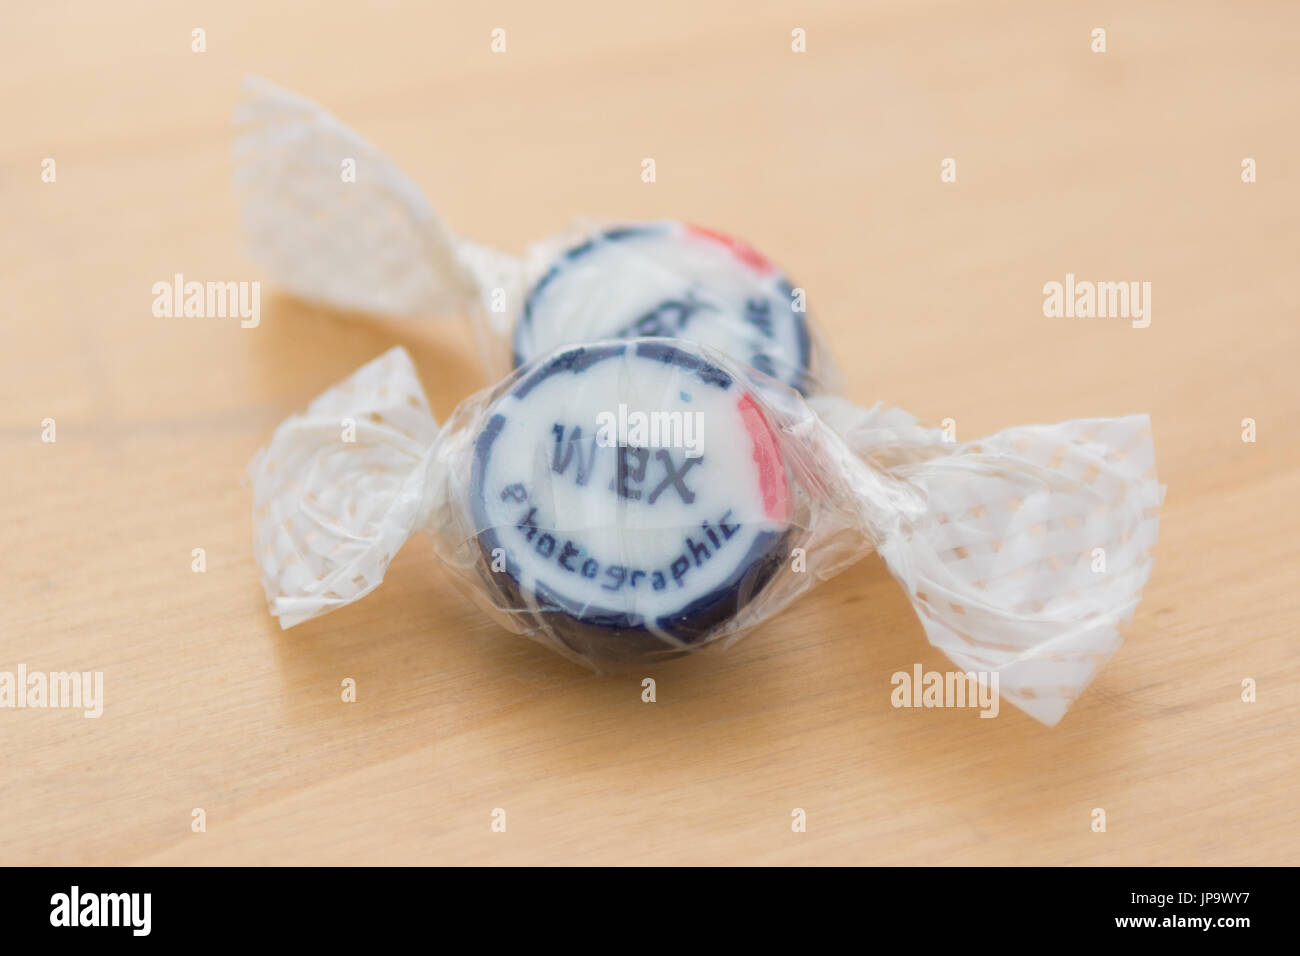 promotional rock sweets enclosed in online order from Wex photographic - Stock Image